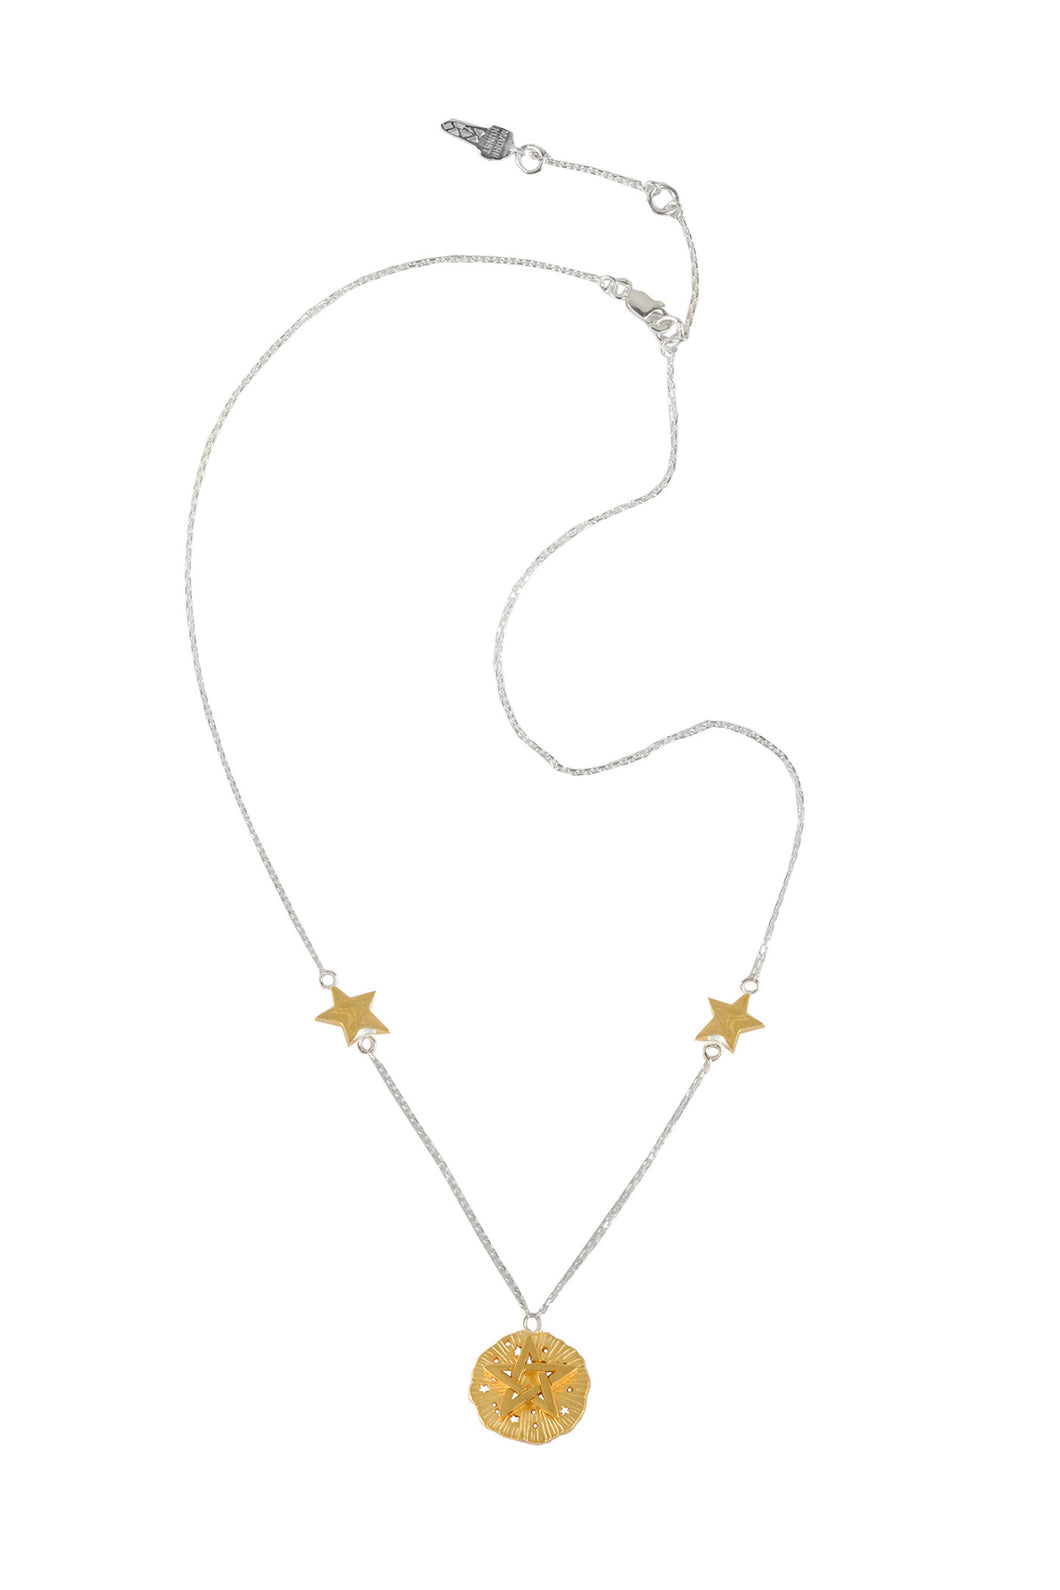 Chain necklace with small pentagram medallion and 2 stars on the chain, 46 cm, partly silver, gold plated.